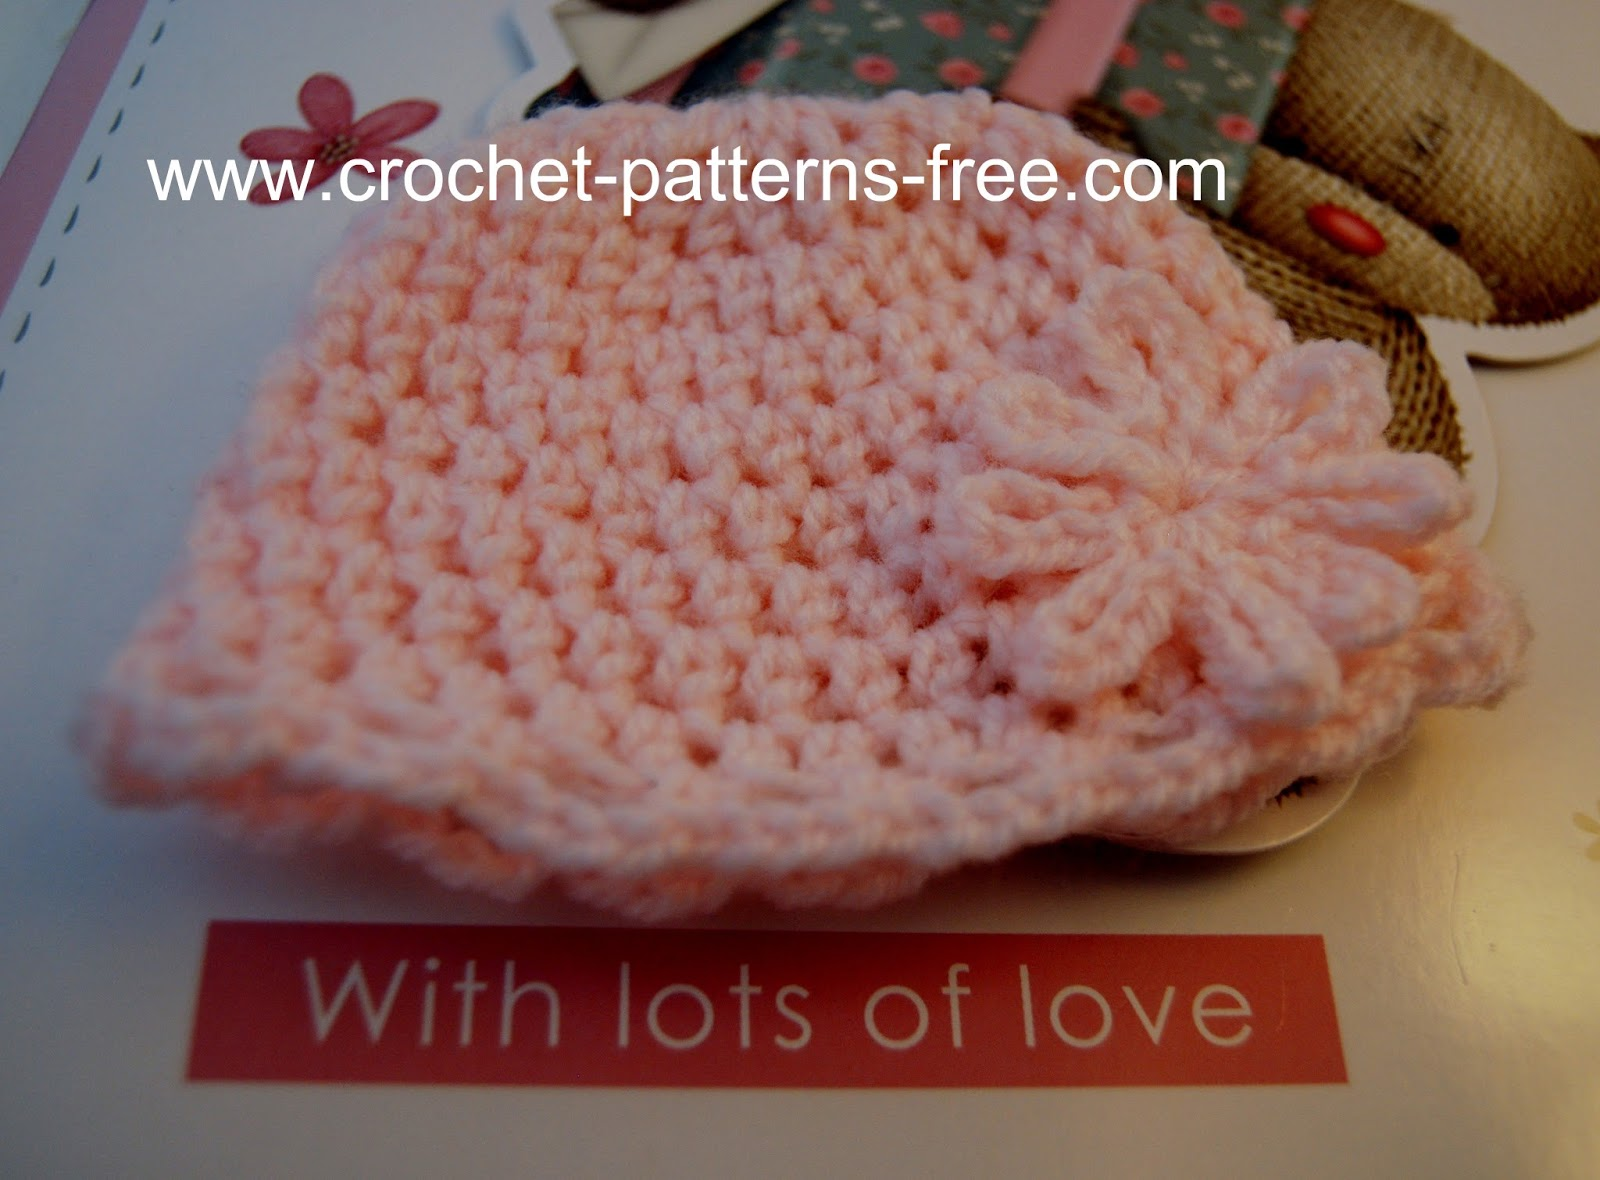 Crocheting Hats : FREE CROCHET PREEMIE HAT PATTERN - Crochet - Learn How to Crochet